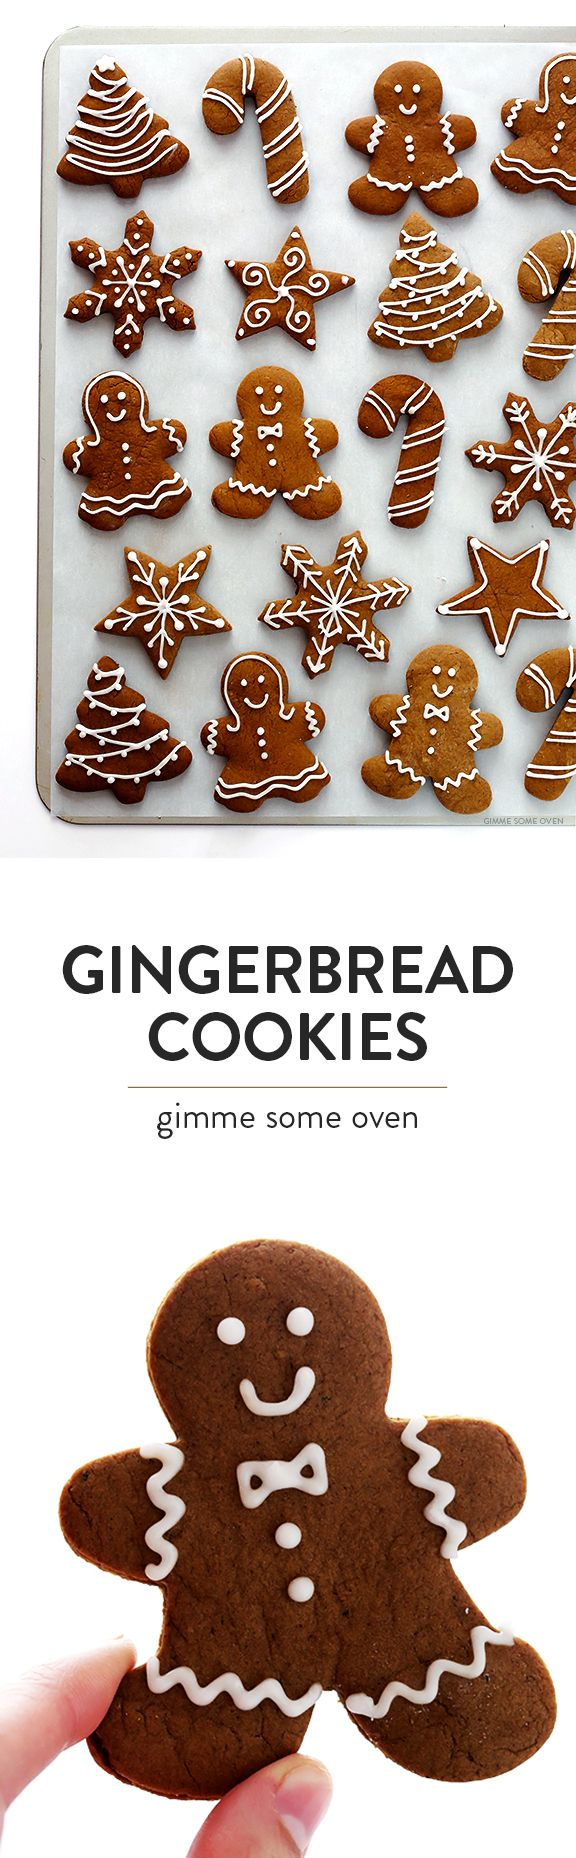 Gingerbread Cookies - This classic gingerbread cookies recipe is super delicious, totally easy to make, and perfect for decorating around the holidays!